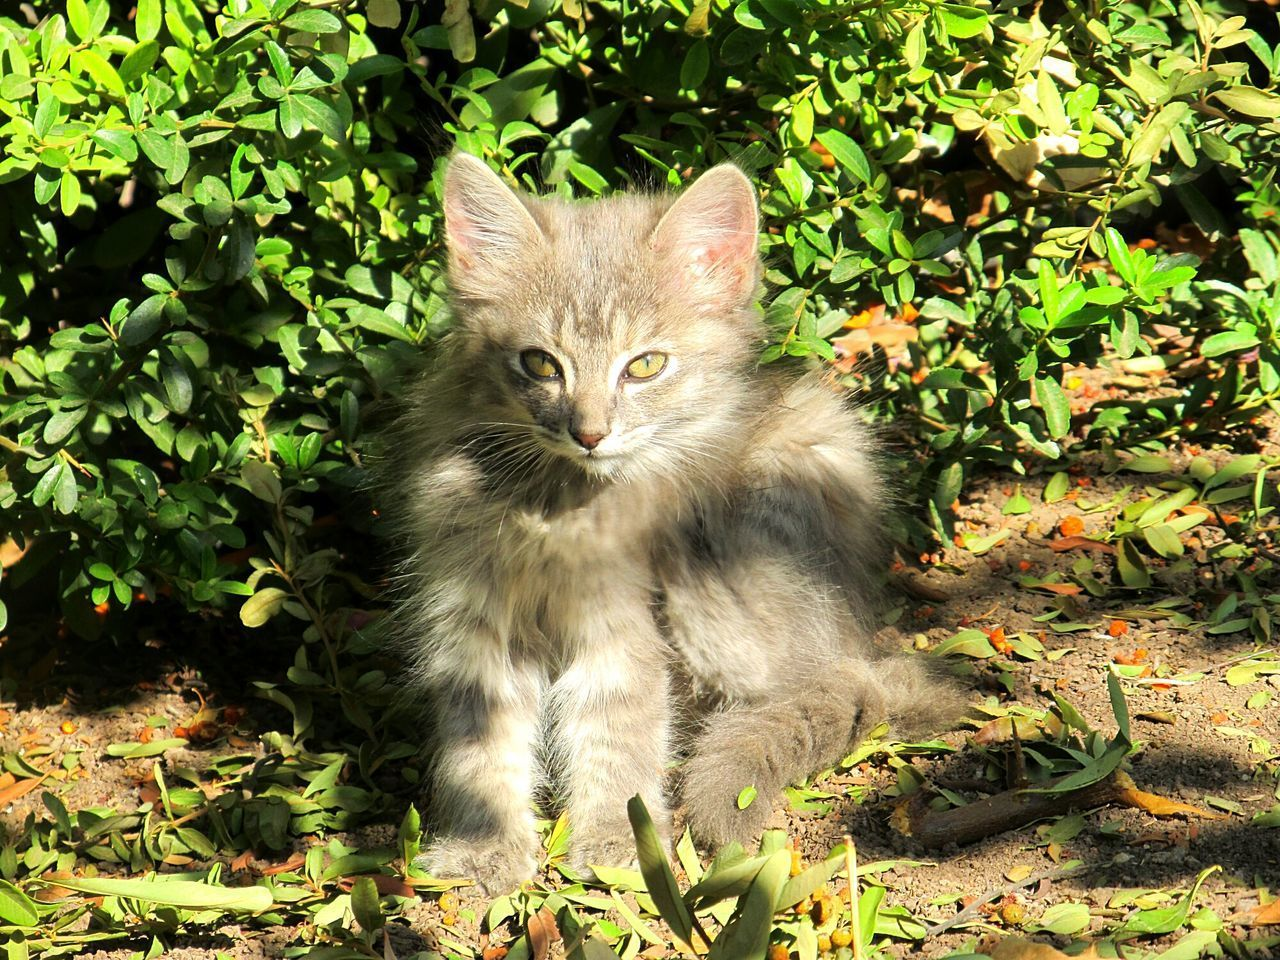 domestic cat, feline, domestic animals, mammal, pets, animal themes, whisker, plant, green color, no people, leaf, day, outdoors, portrait, nature